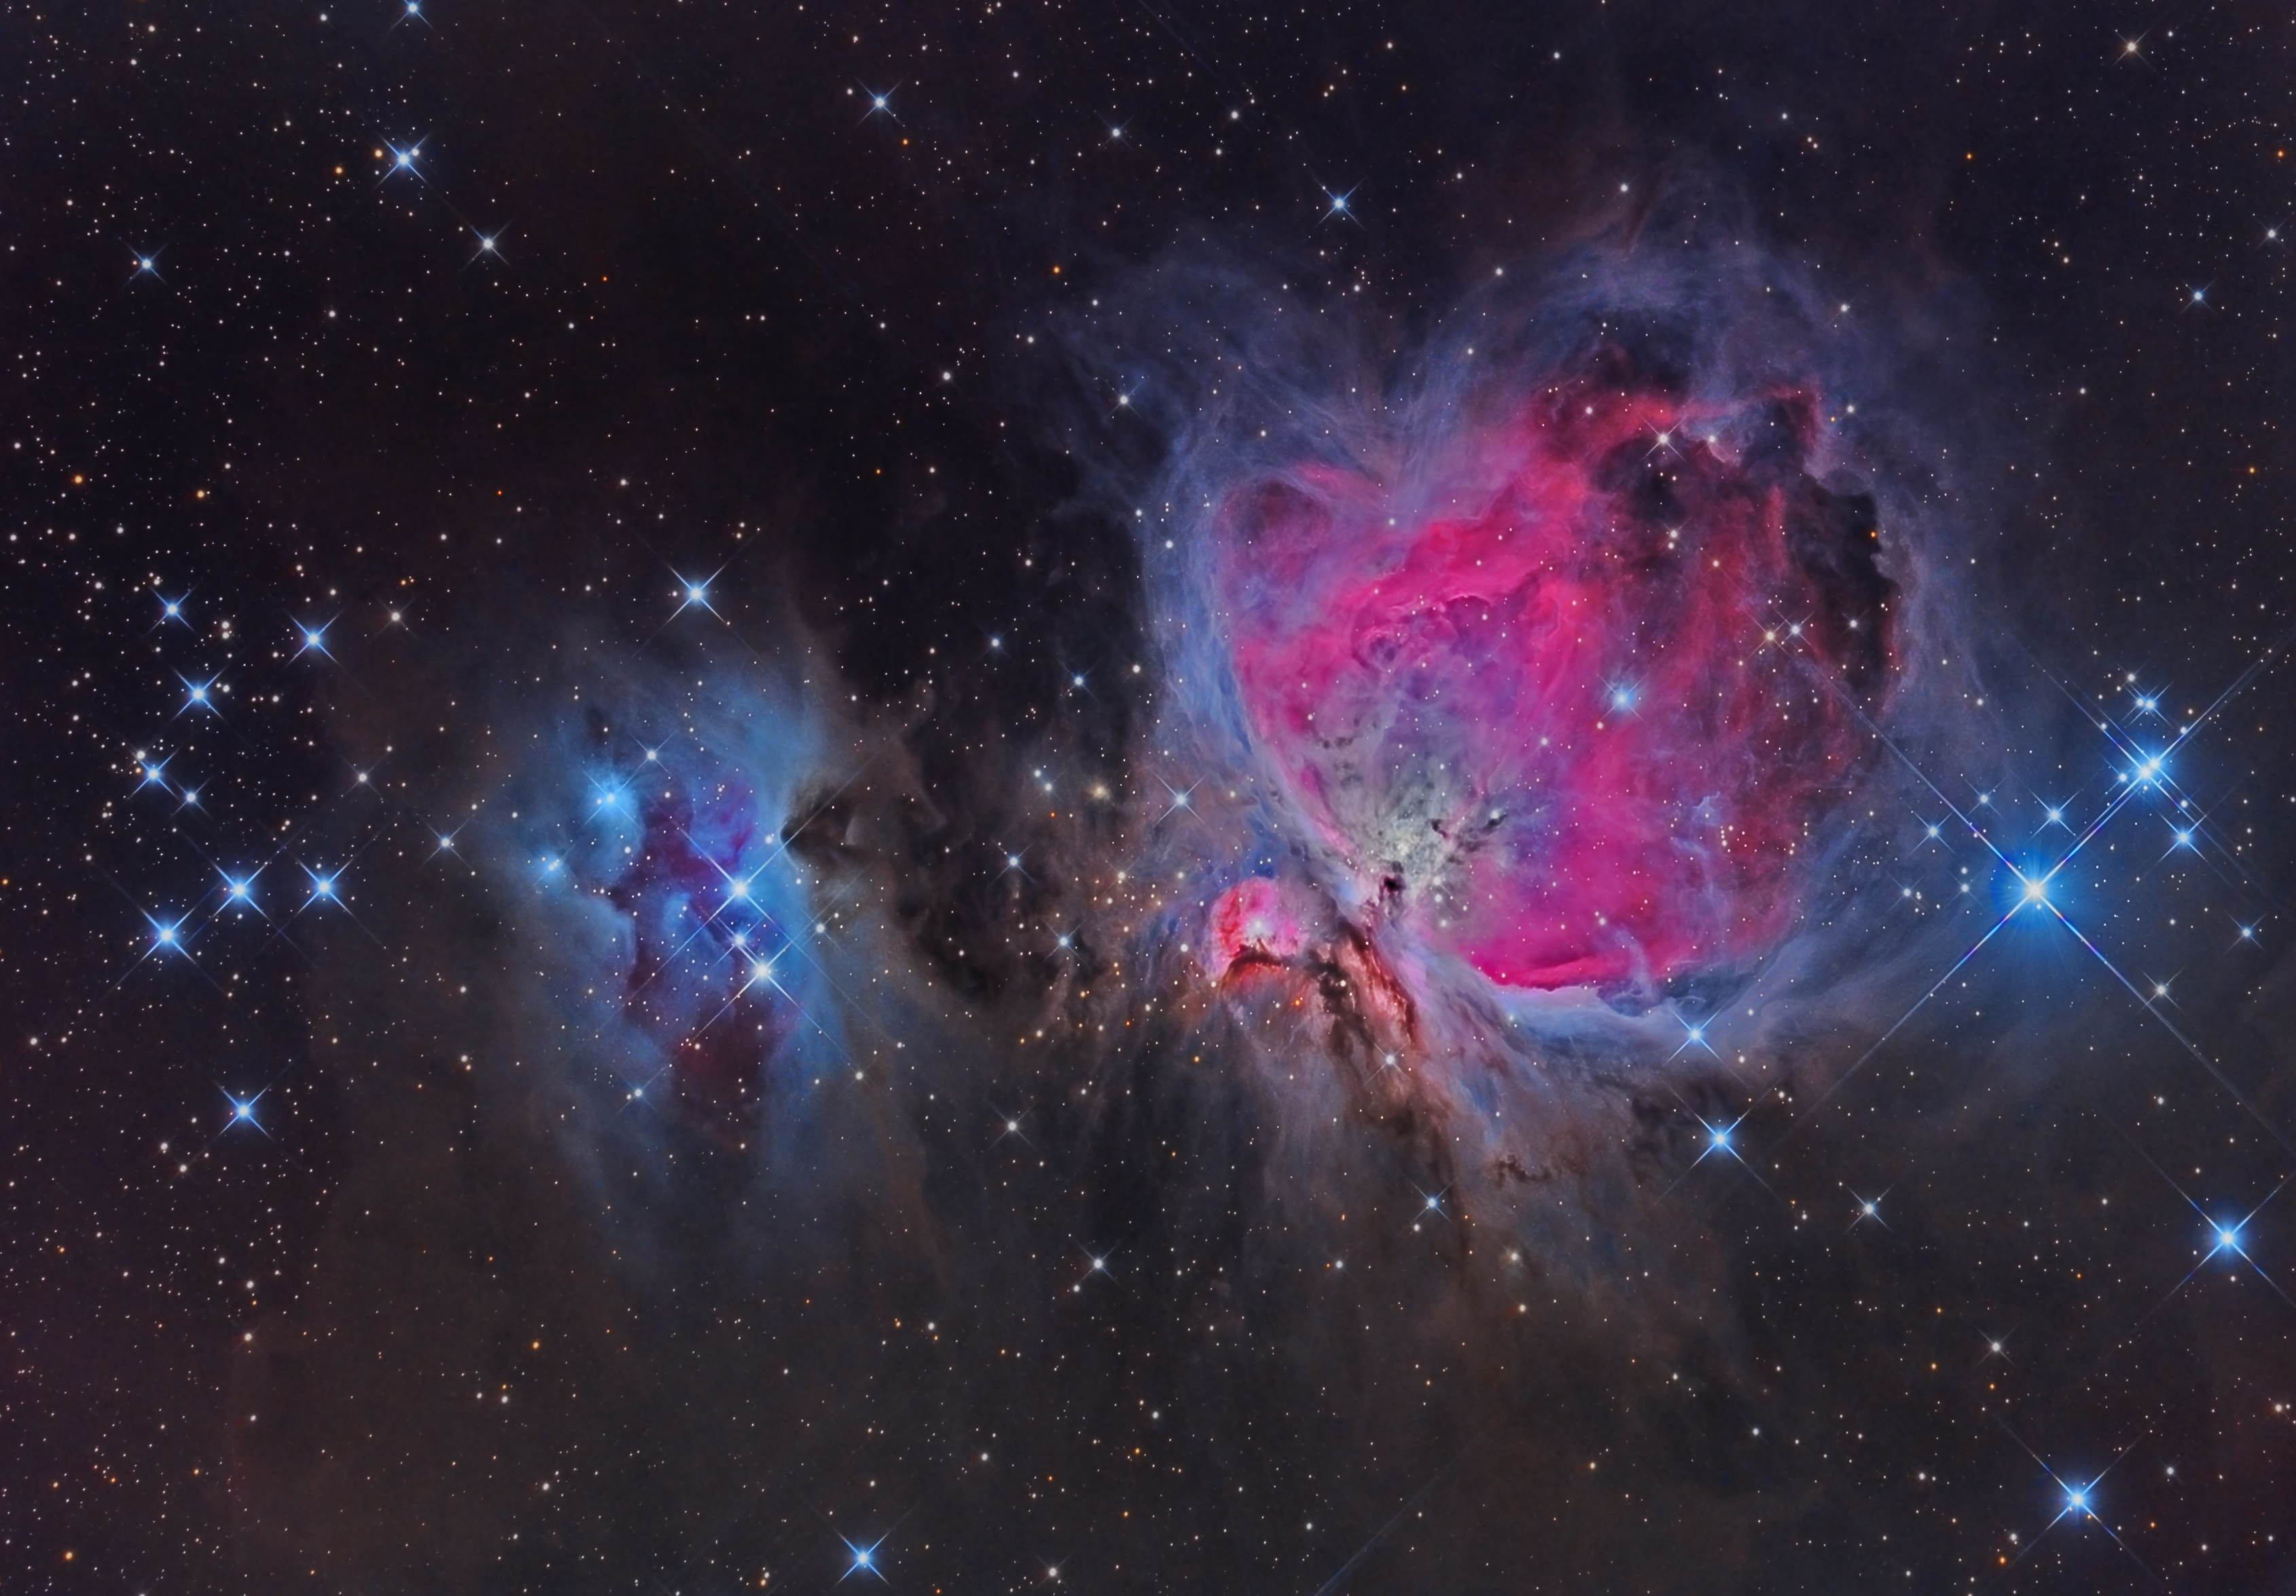 Orion's Sword - Astrodoc: Astrophotography by Ron Brecher